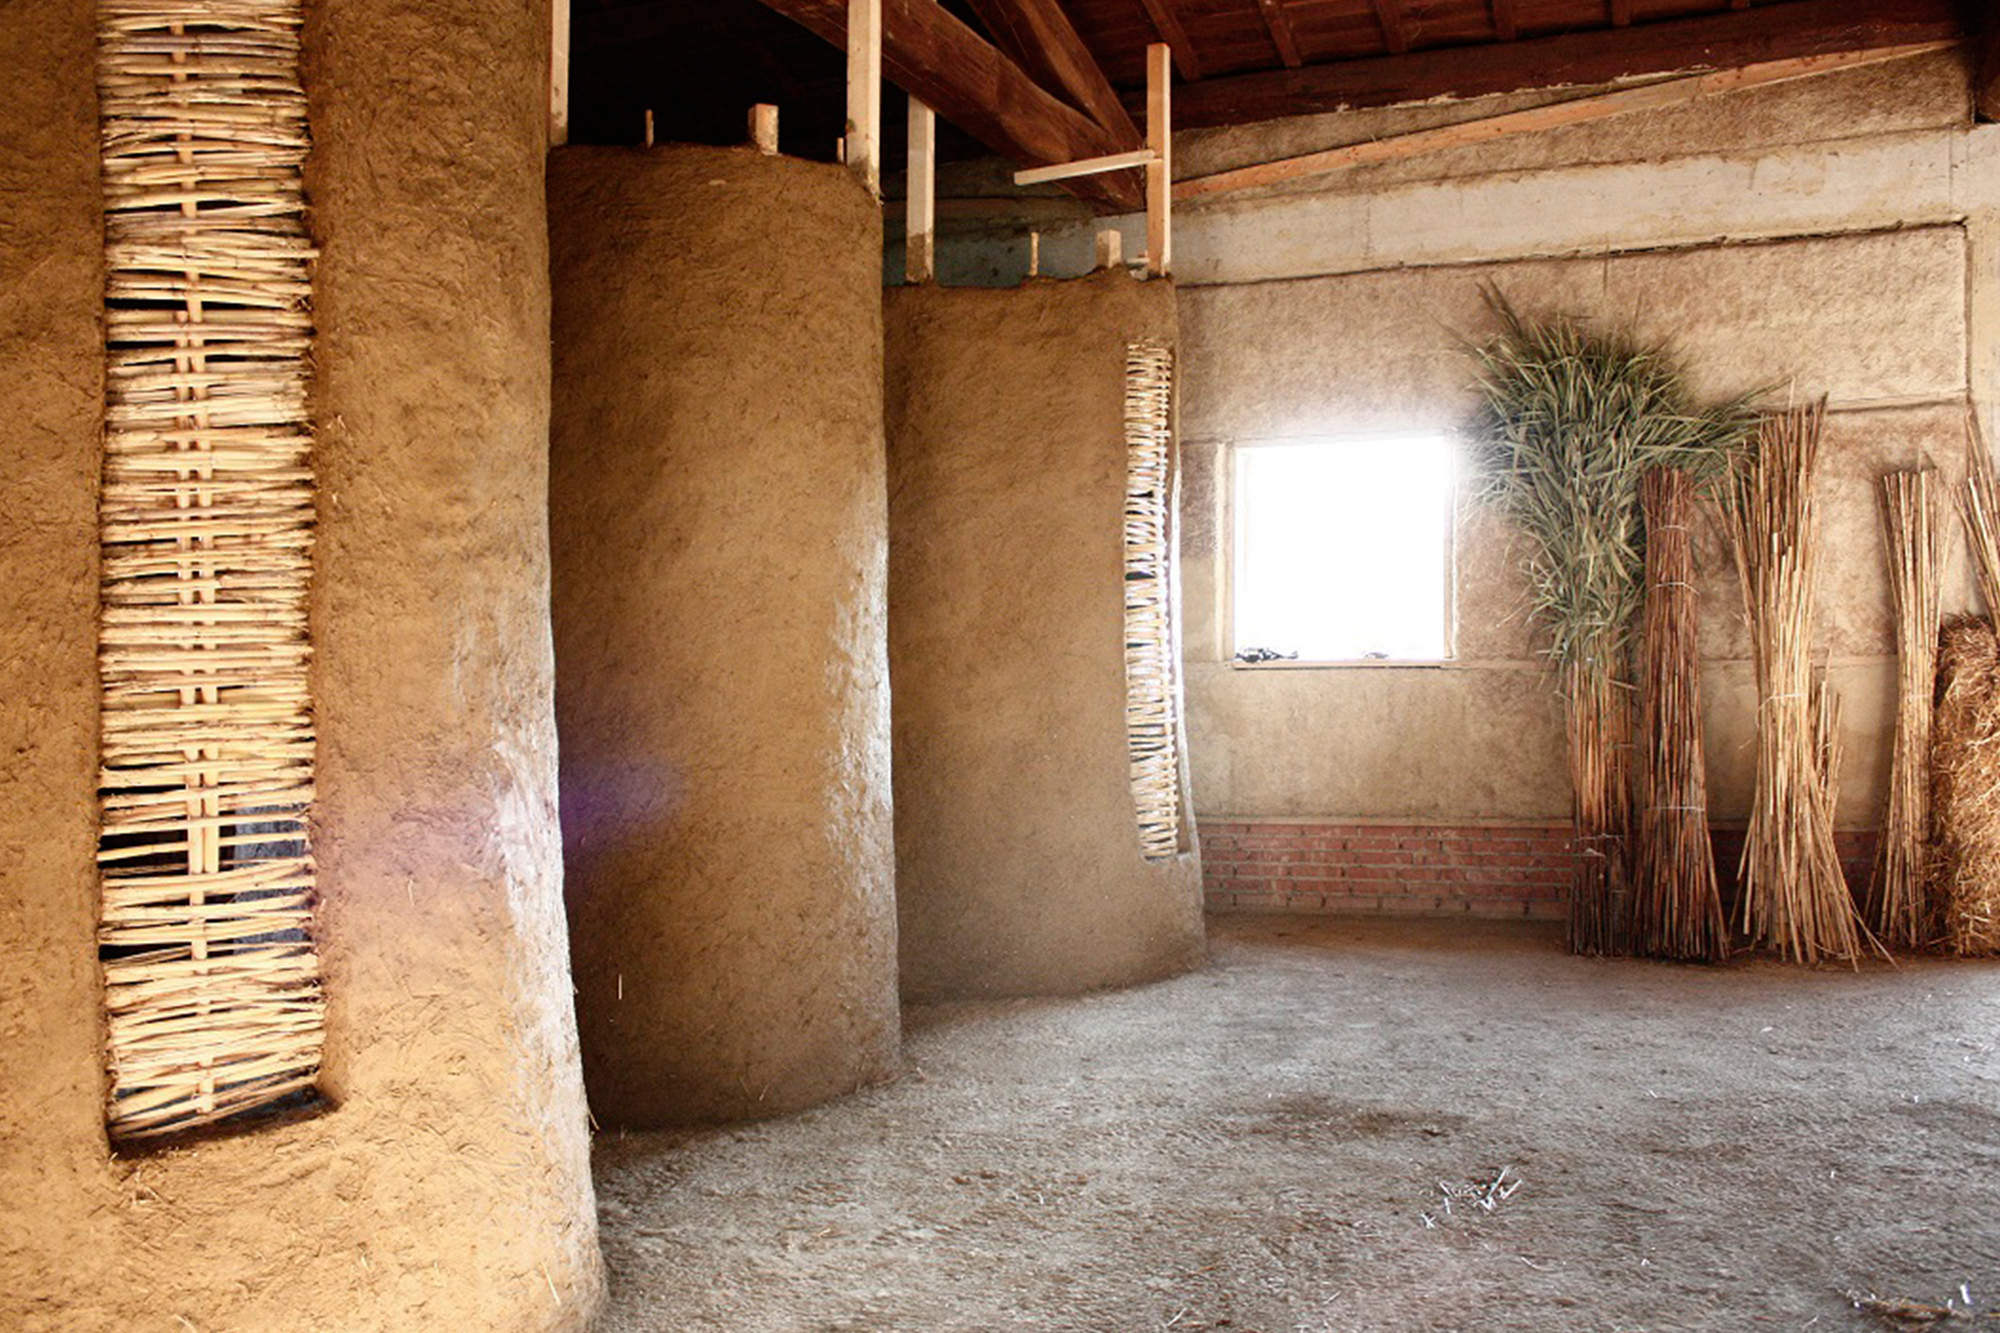 Workshop In Italy Constructs Rammed Earth Structures To